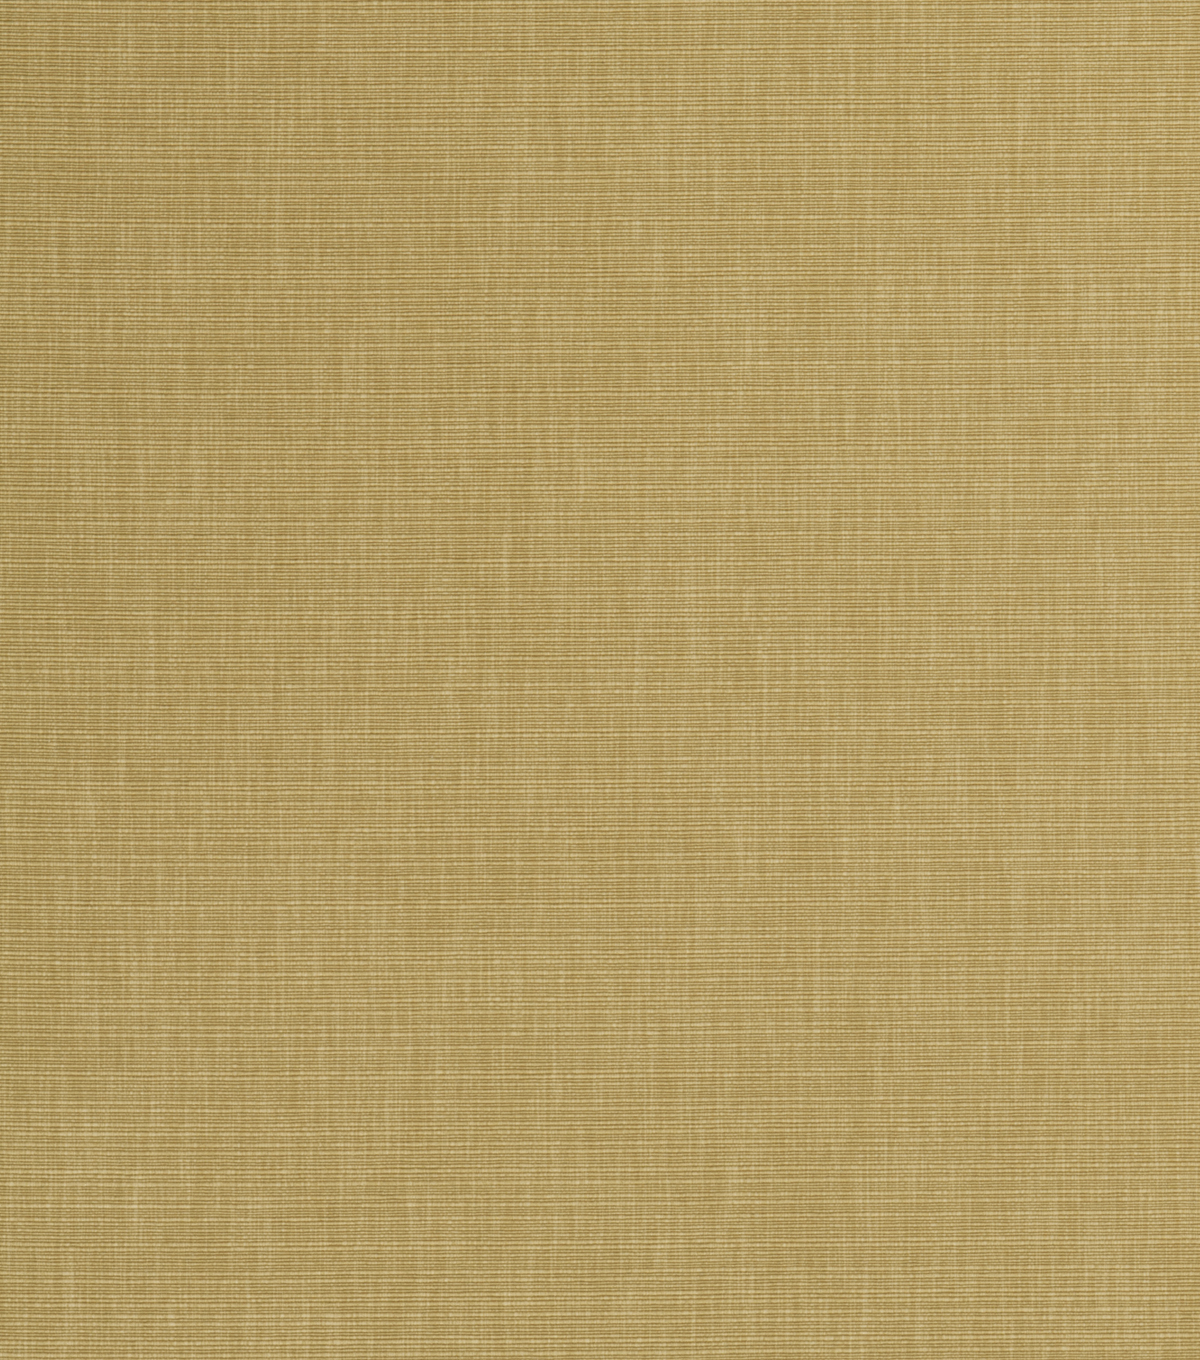 Home Decor 8x8 Fabric Swatch-Eaton Square Archie Mustard